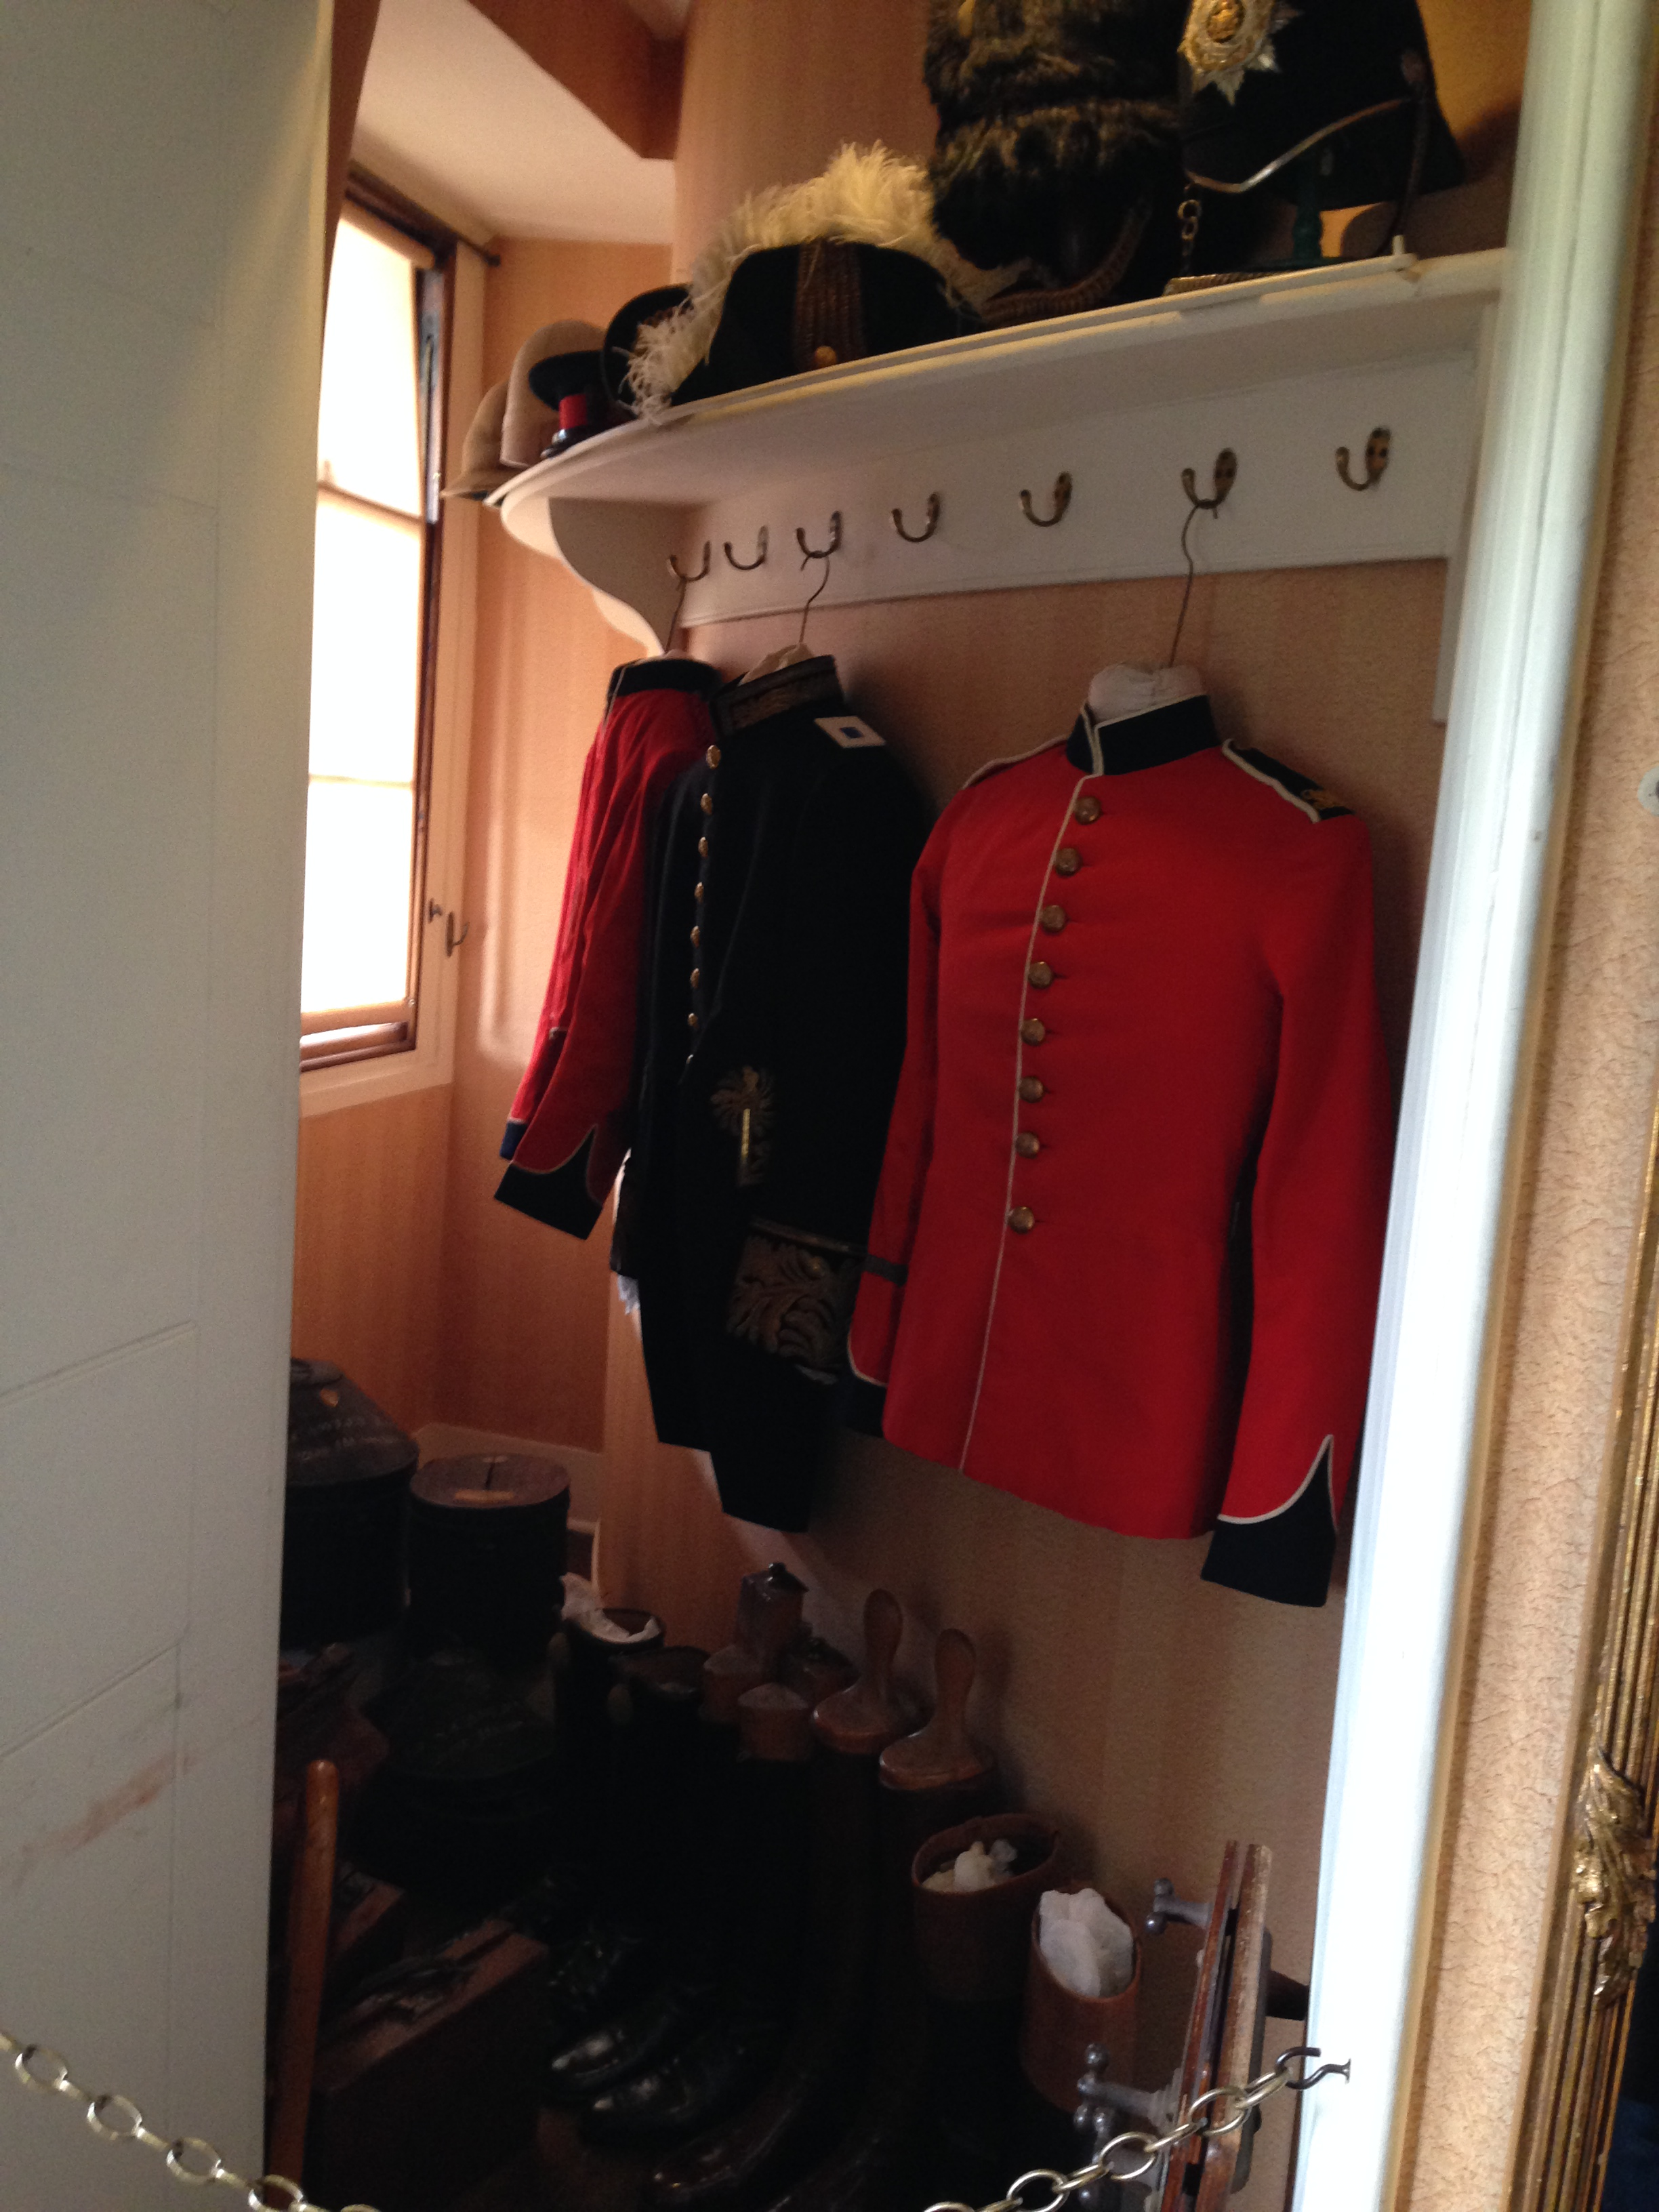 The oval room created some odd closet spaces in the other rooms